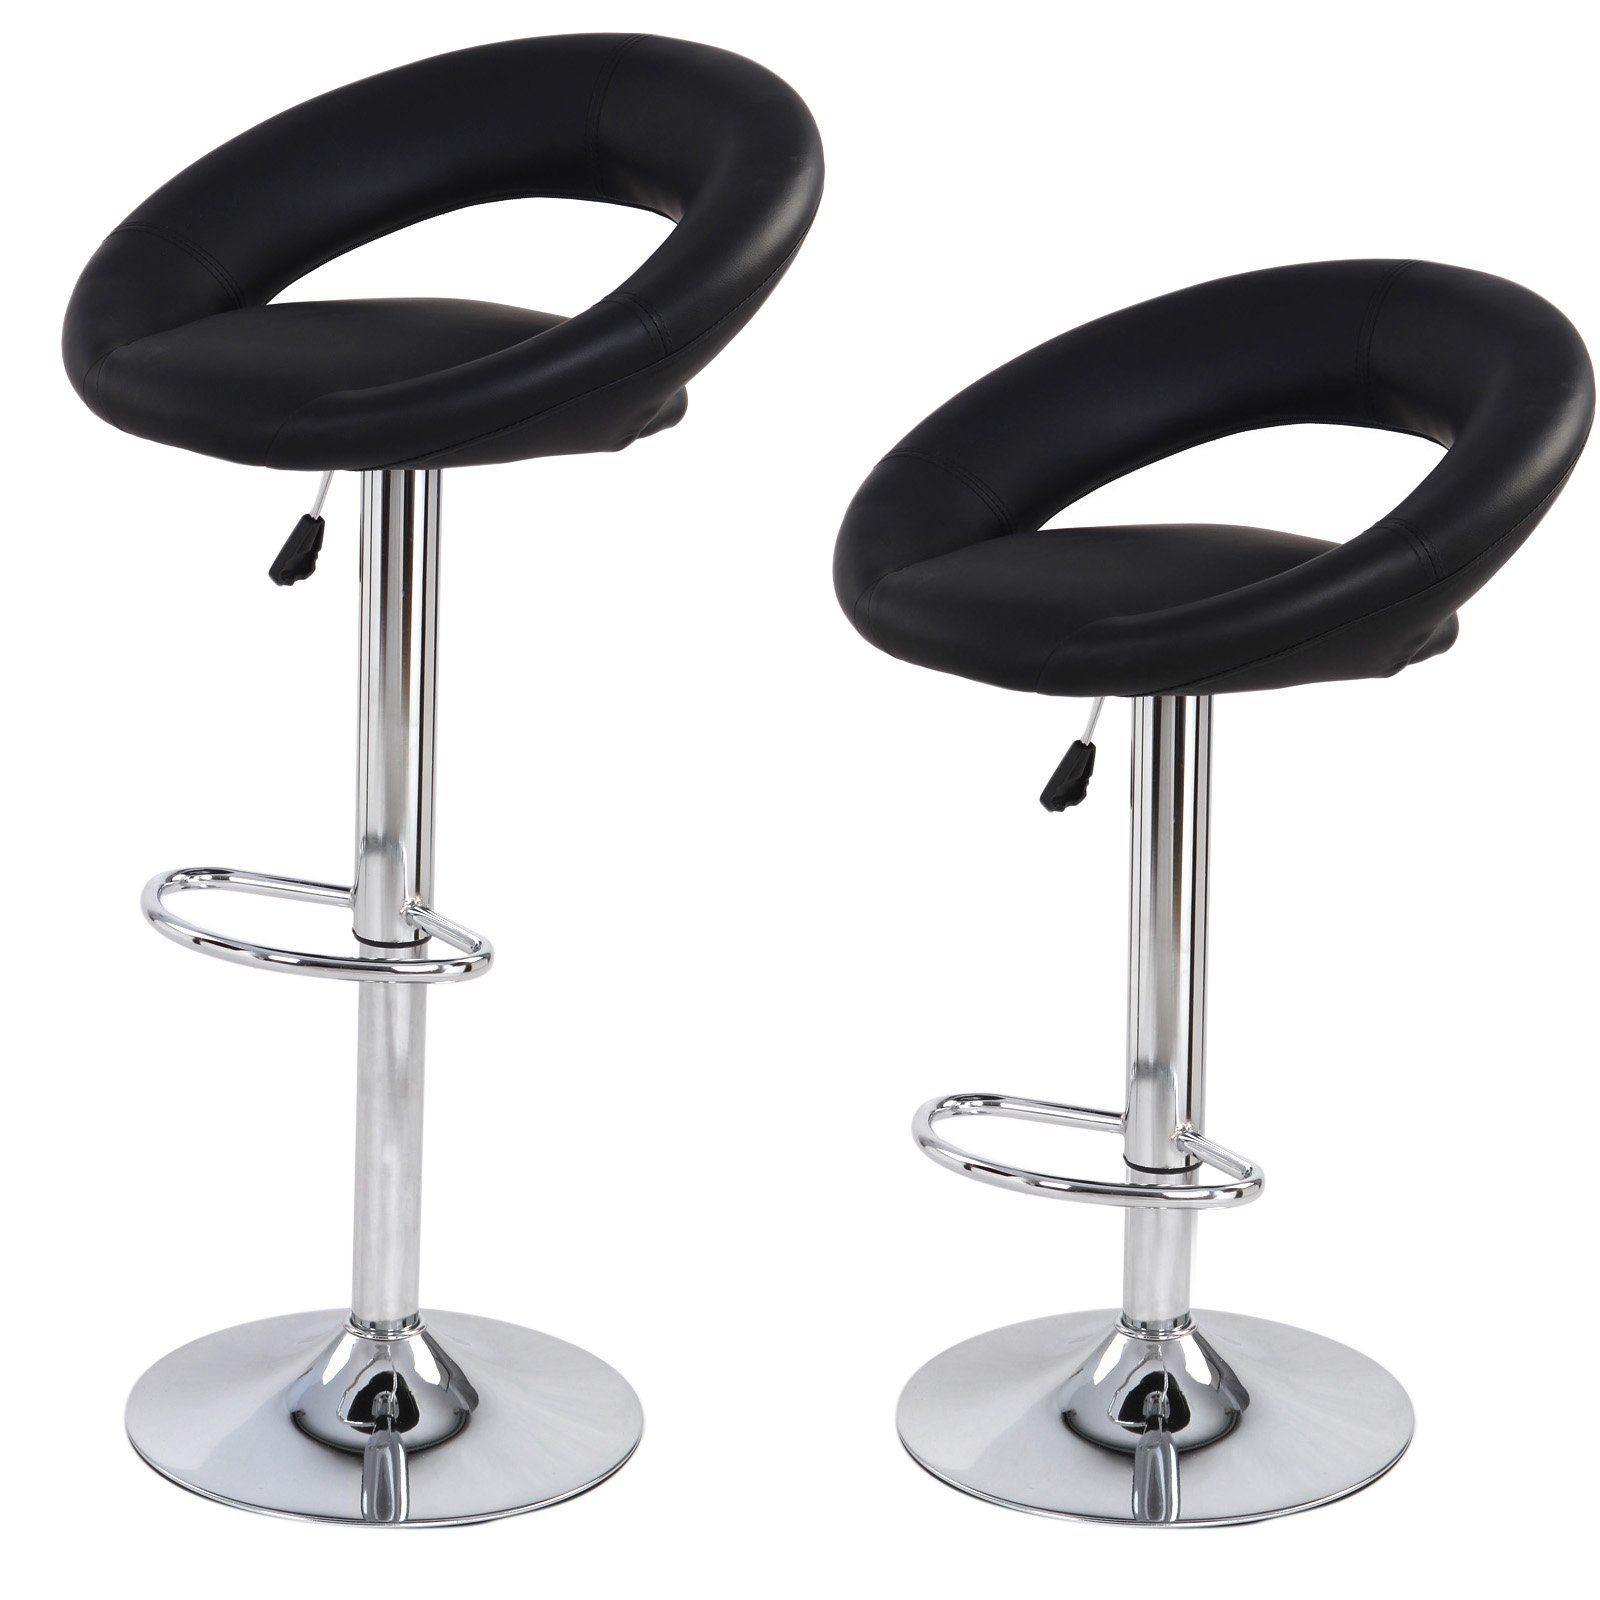 Songmics Lot De 2 Tabourets De Bar Stool Lot De 2 Tabourets De Bar Noir Grande Riviere Int Pinterest